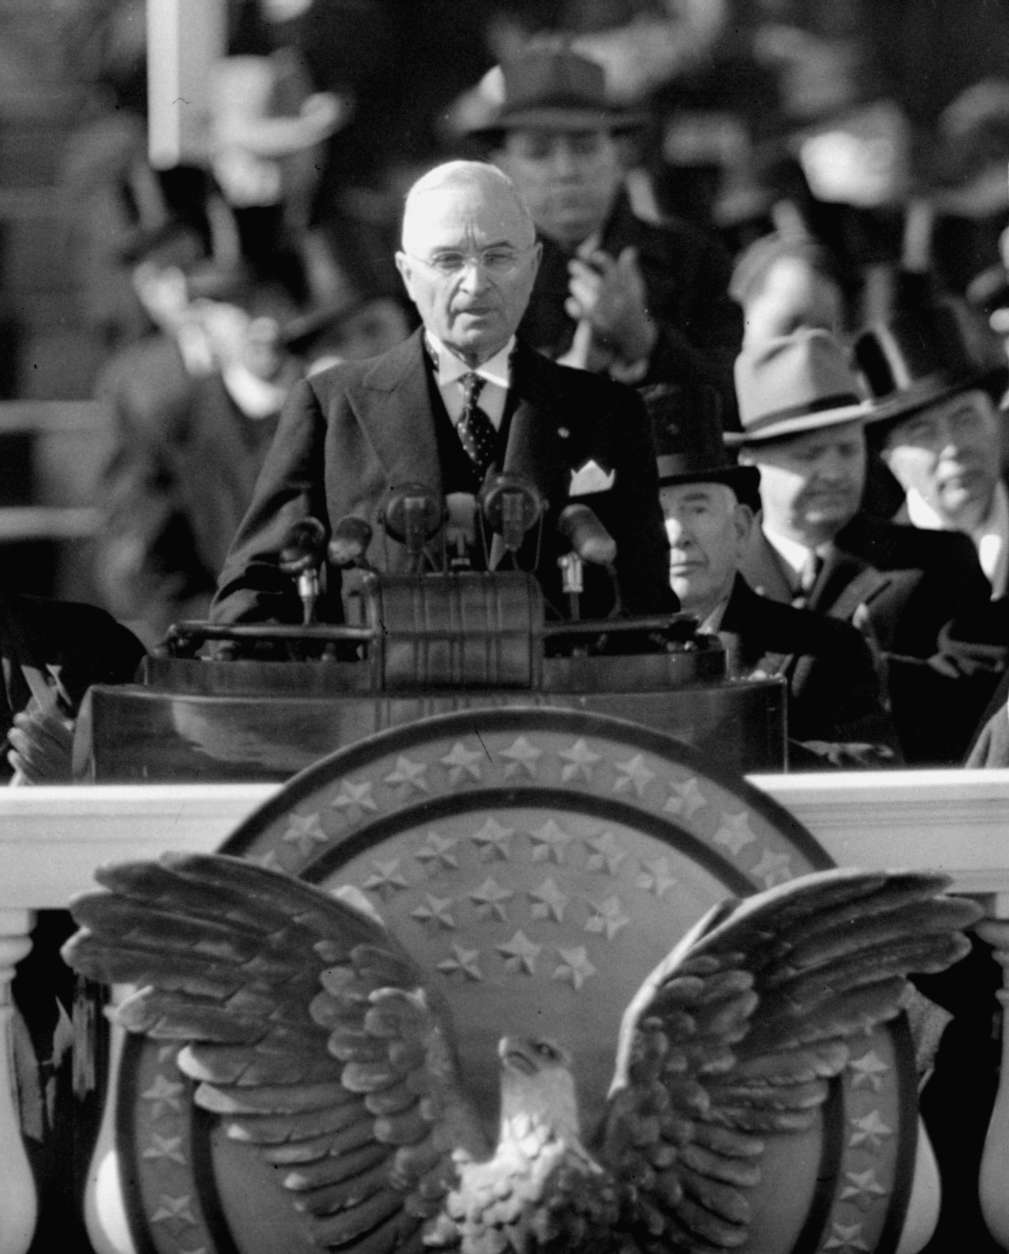 President Harry S. Truman delivers inaugural address from Capitol portico, January 20, 1949, after taking oath of office for his first full term as chief executive. (AP Photo/Becker)